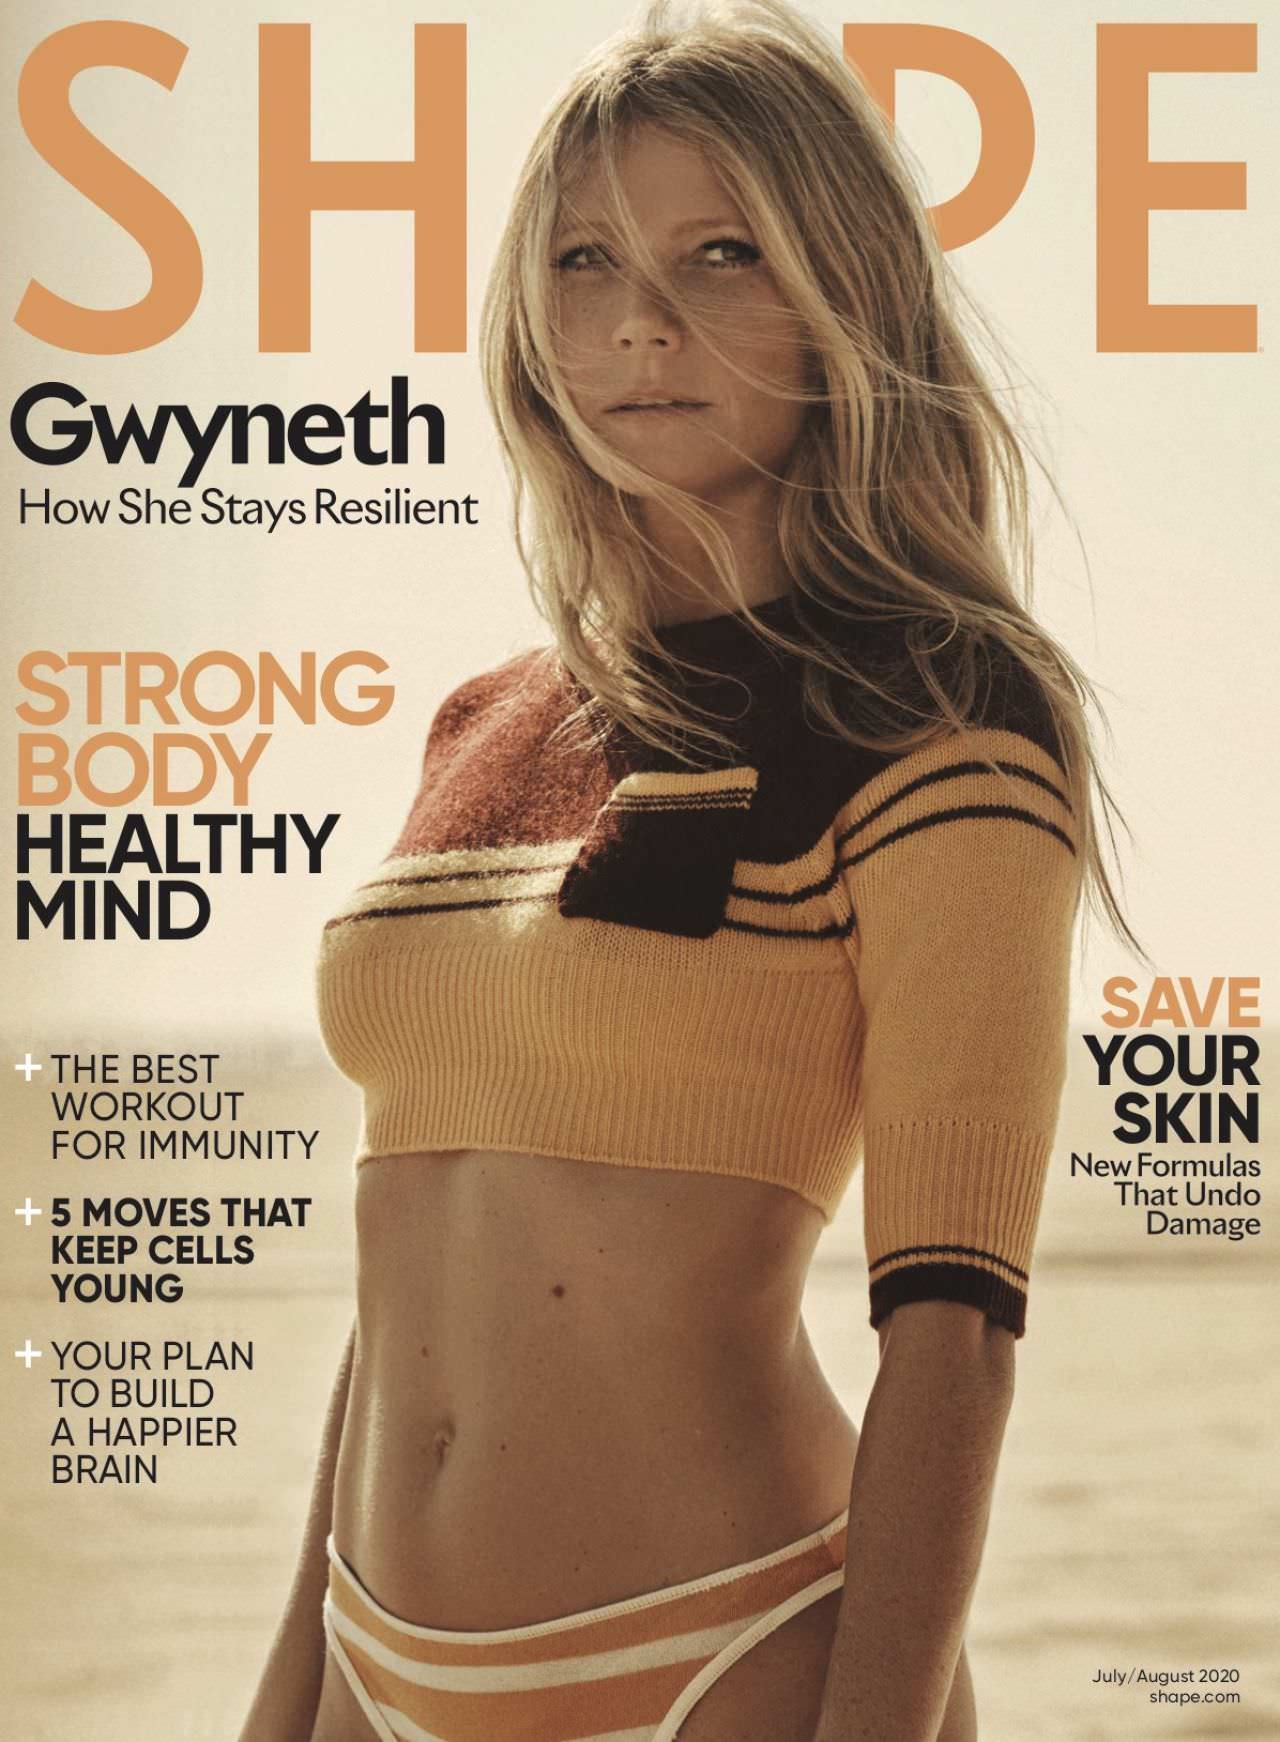 Gwyneth Paltrow Shows Off Her Toned Body for Shape Magazine